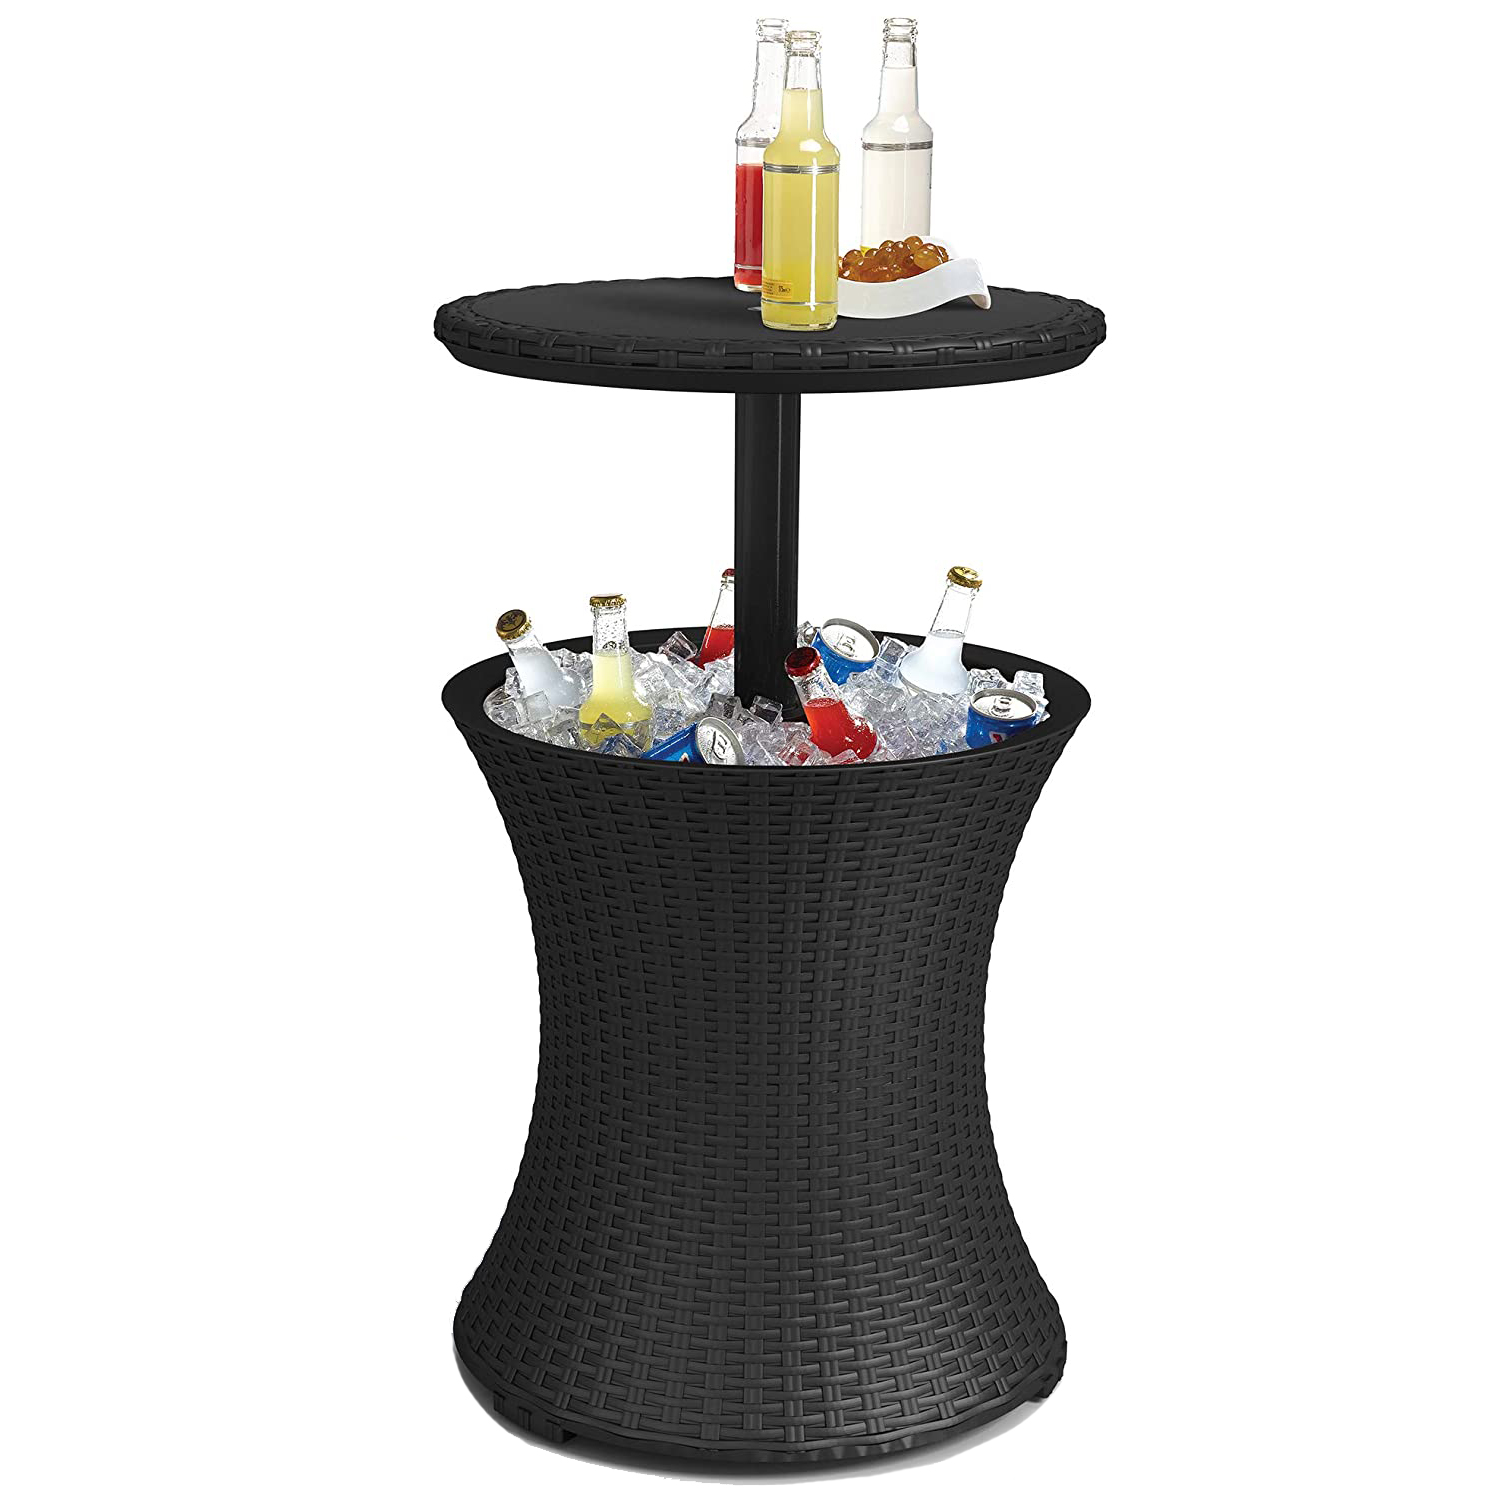 Keter Pacific side table cooler